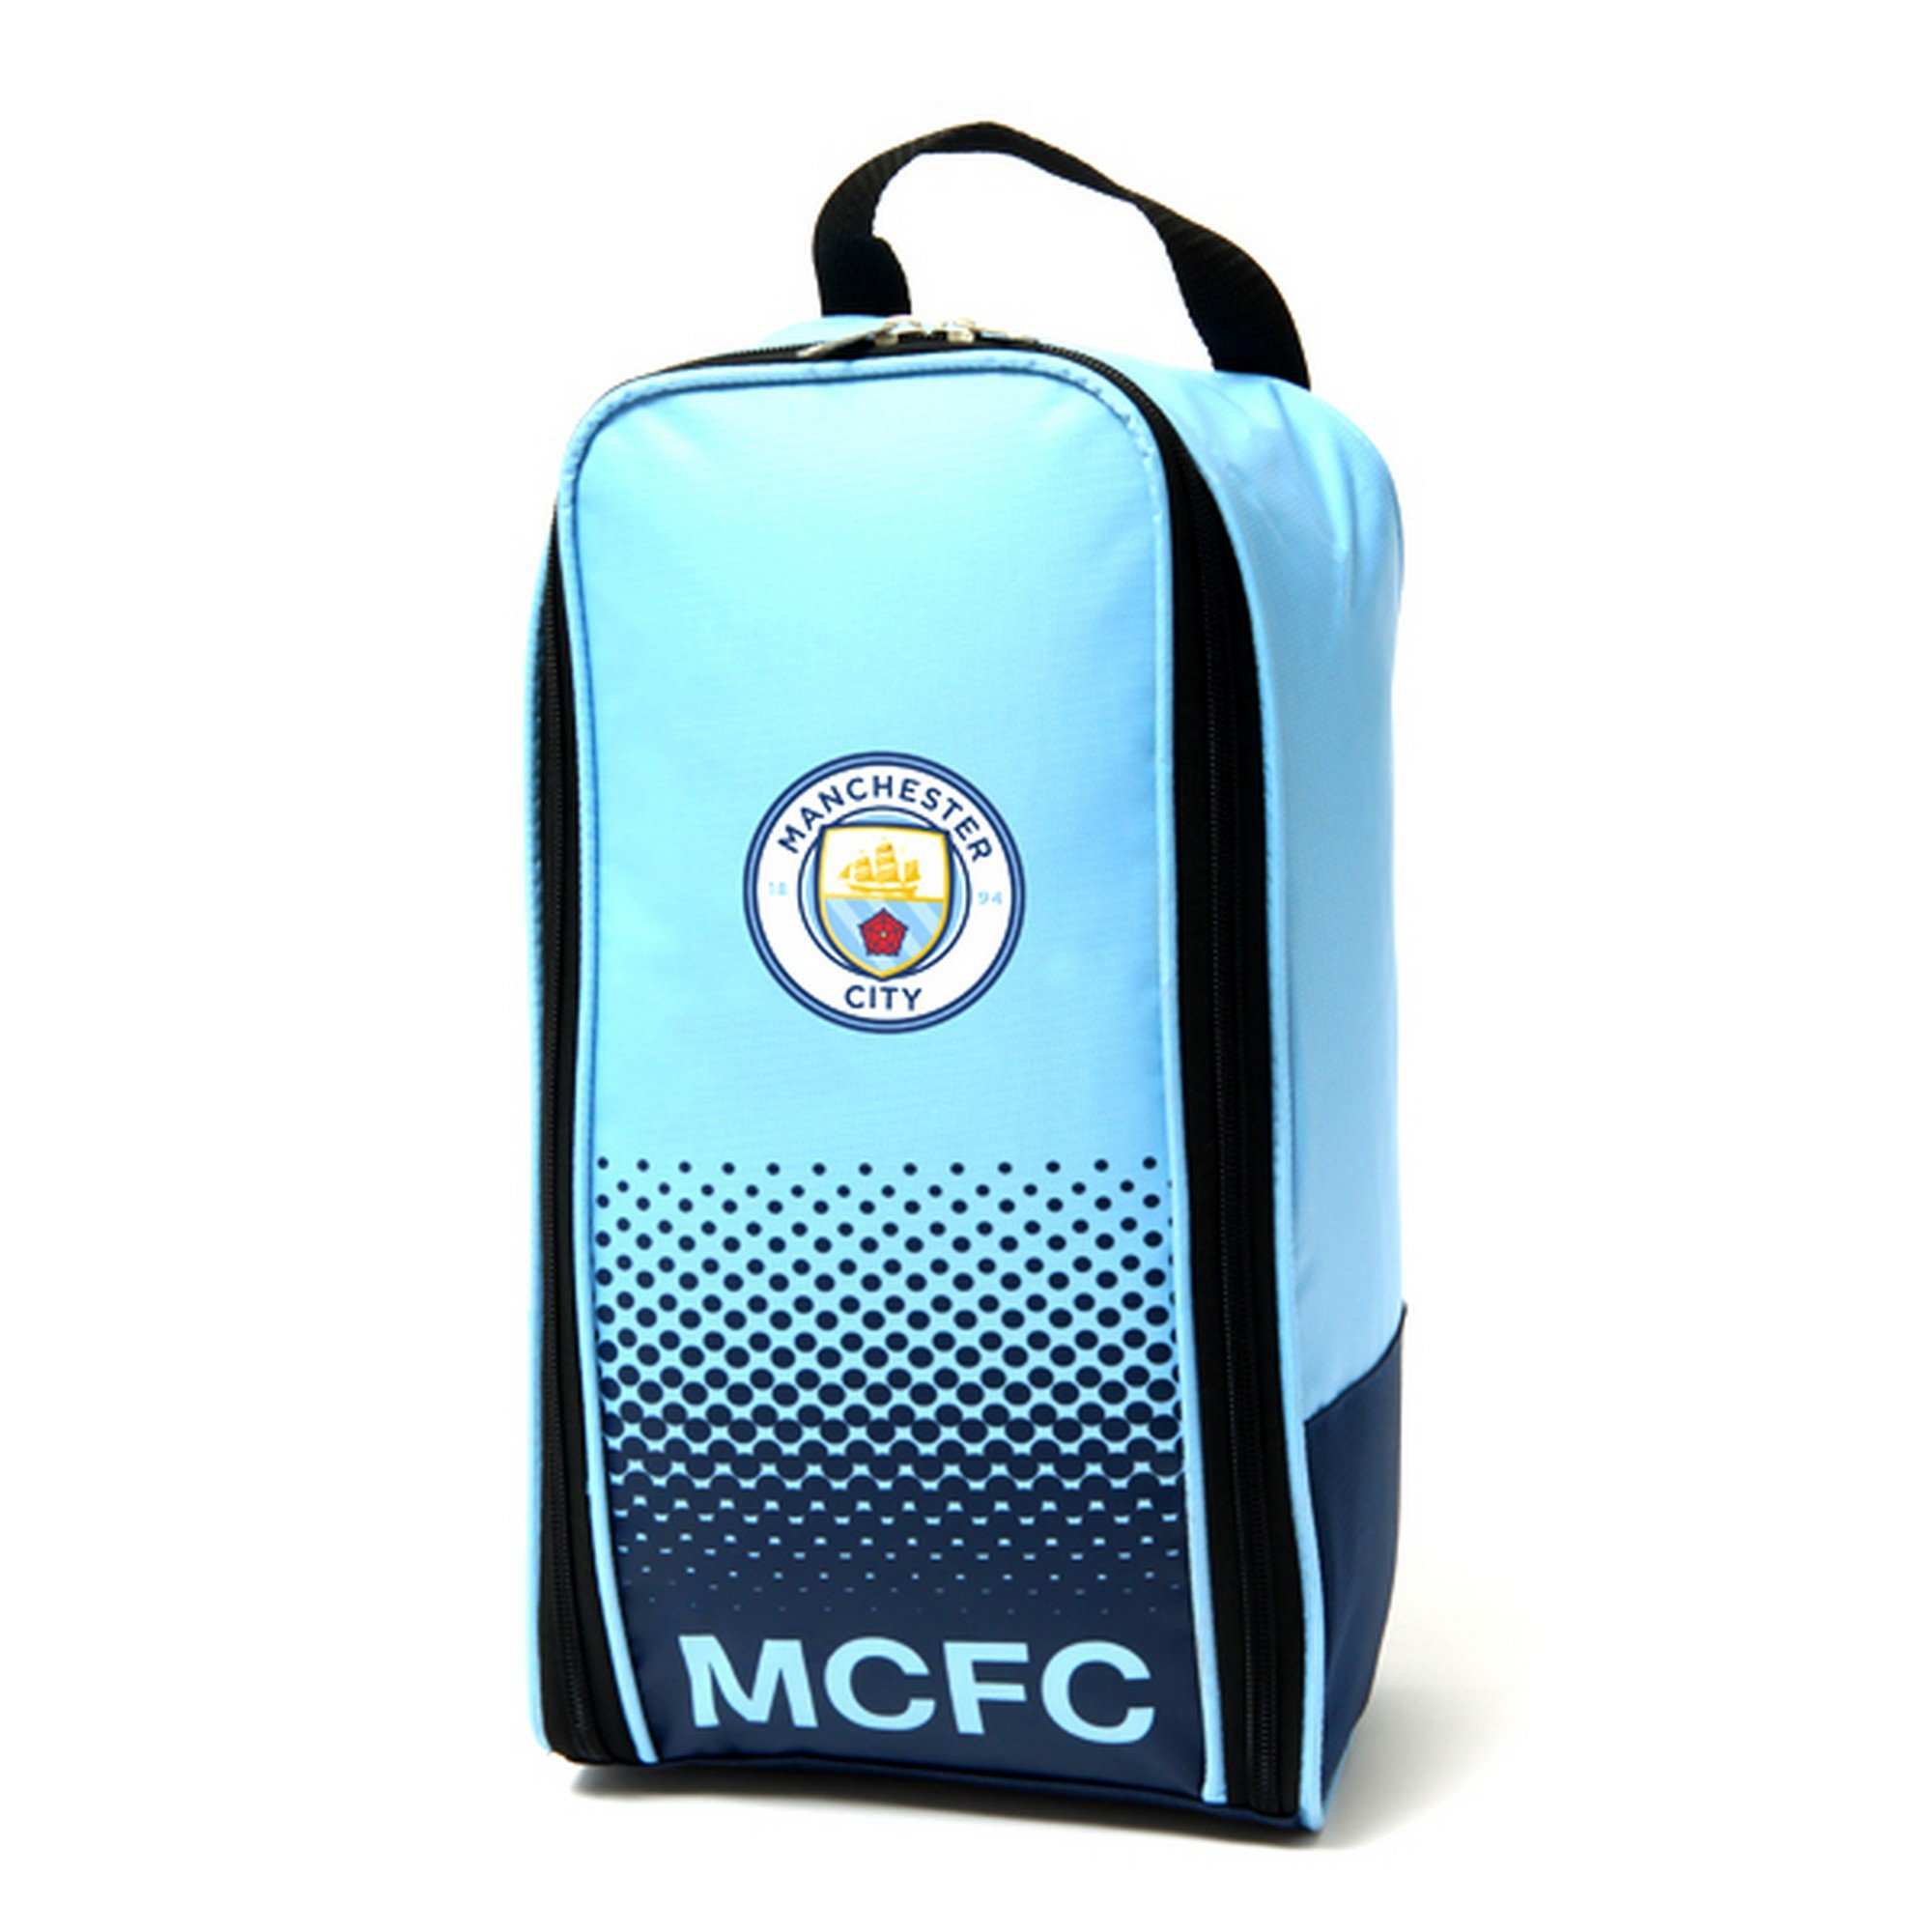 Tottenham Hotspur FC Official Fade Football/Soccer Crest Shoe/Boot Bag (One Size) (Blue/Navy)